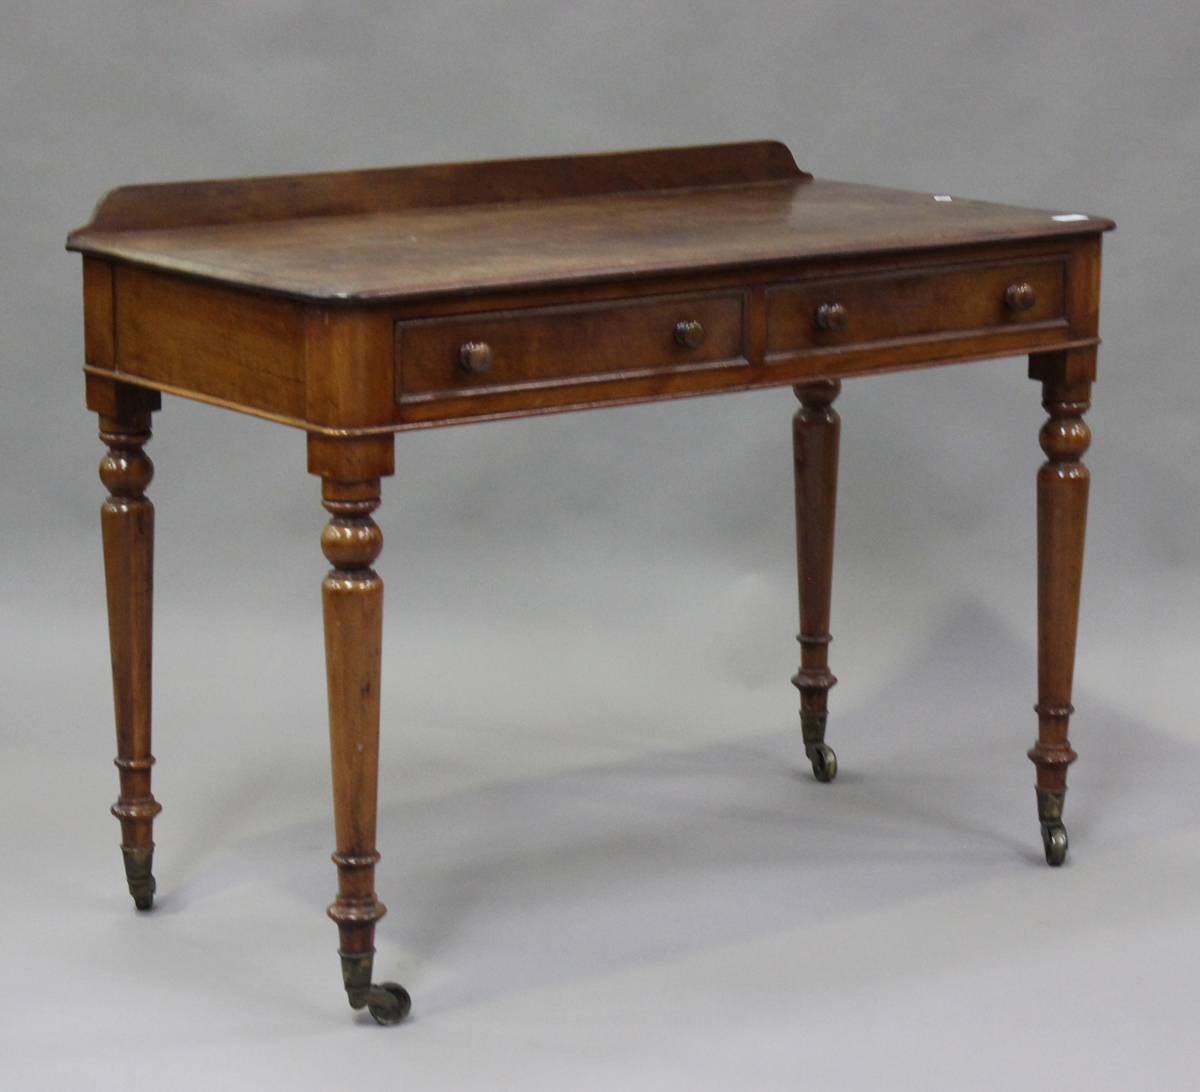 A Victorian mahogany side table, fitted with two frieze drawers, on turned legs, height 80cm,